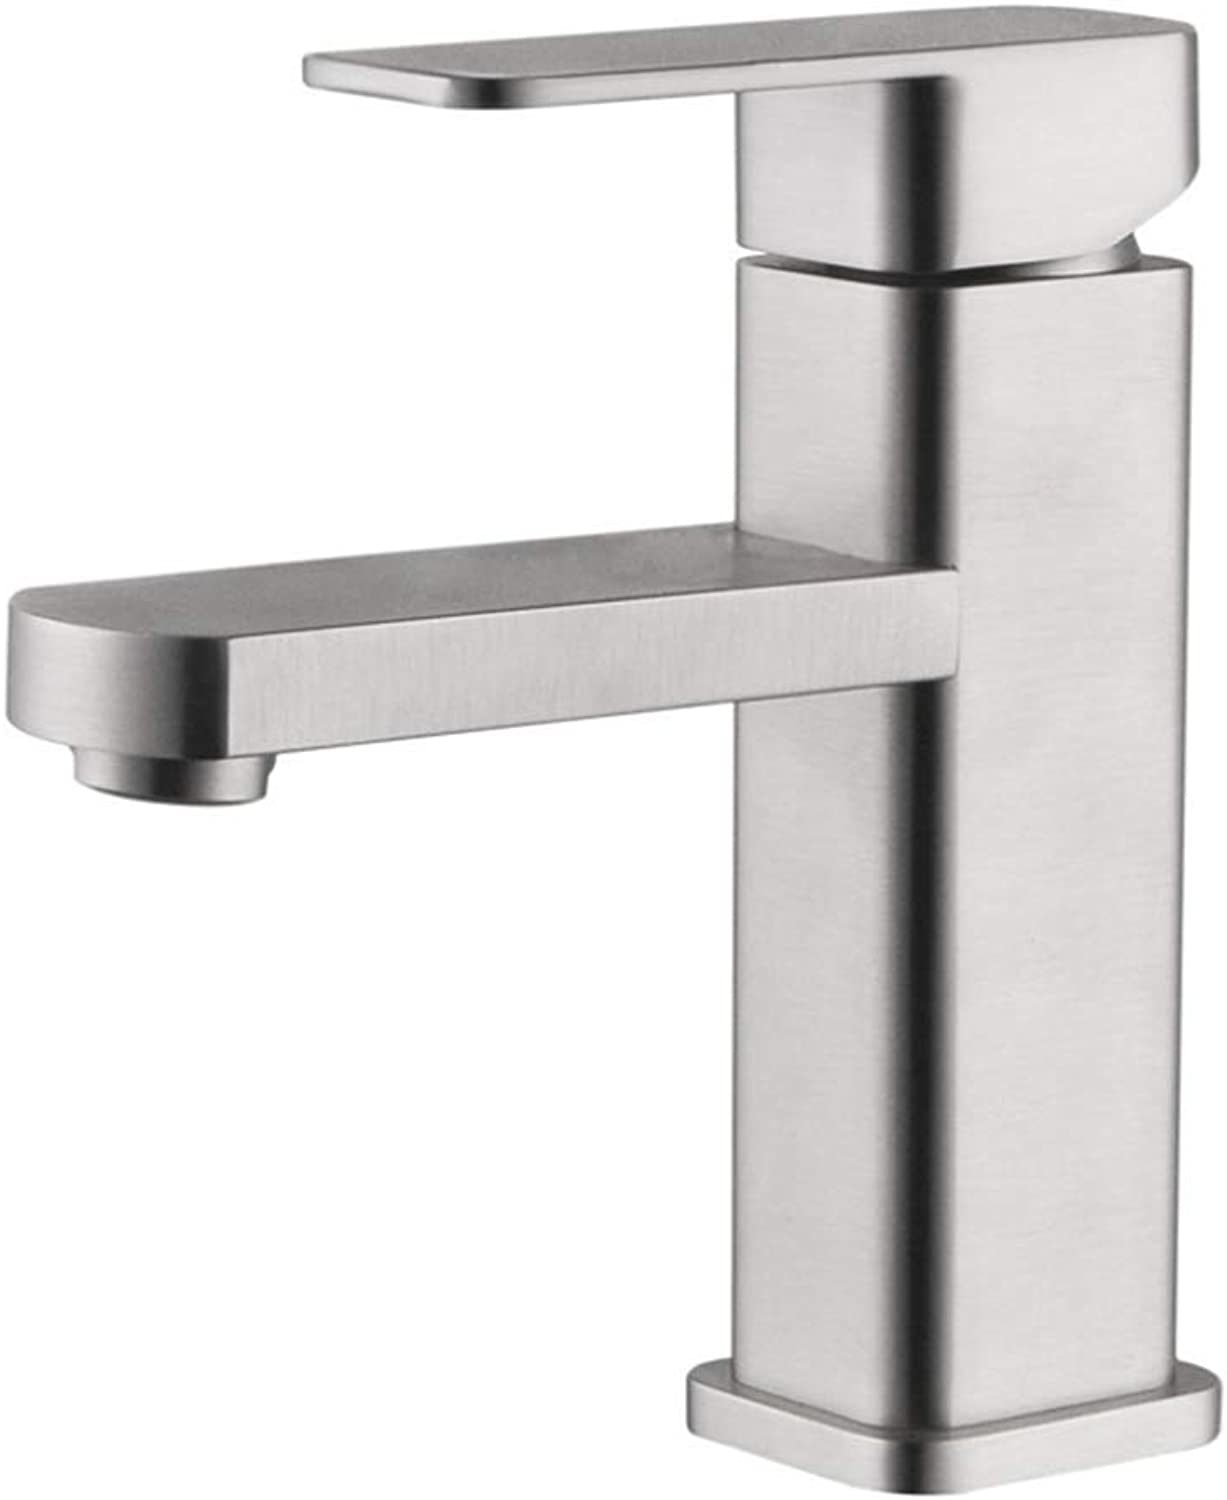 Basin Mixer Tap Bath Fixtures Wash Basinsinkkitchen All Copper Chrome Plated Basin Faucet, High-Grade Bathroom, Square Washbasin, Hot and Cold Water Mixing Tap.